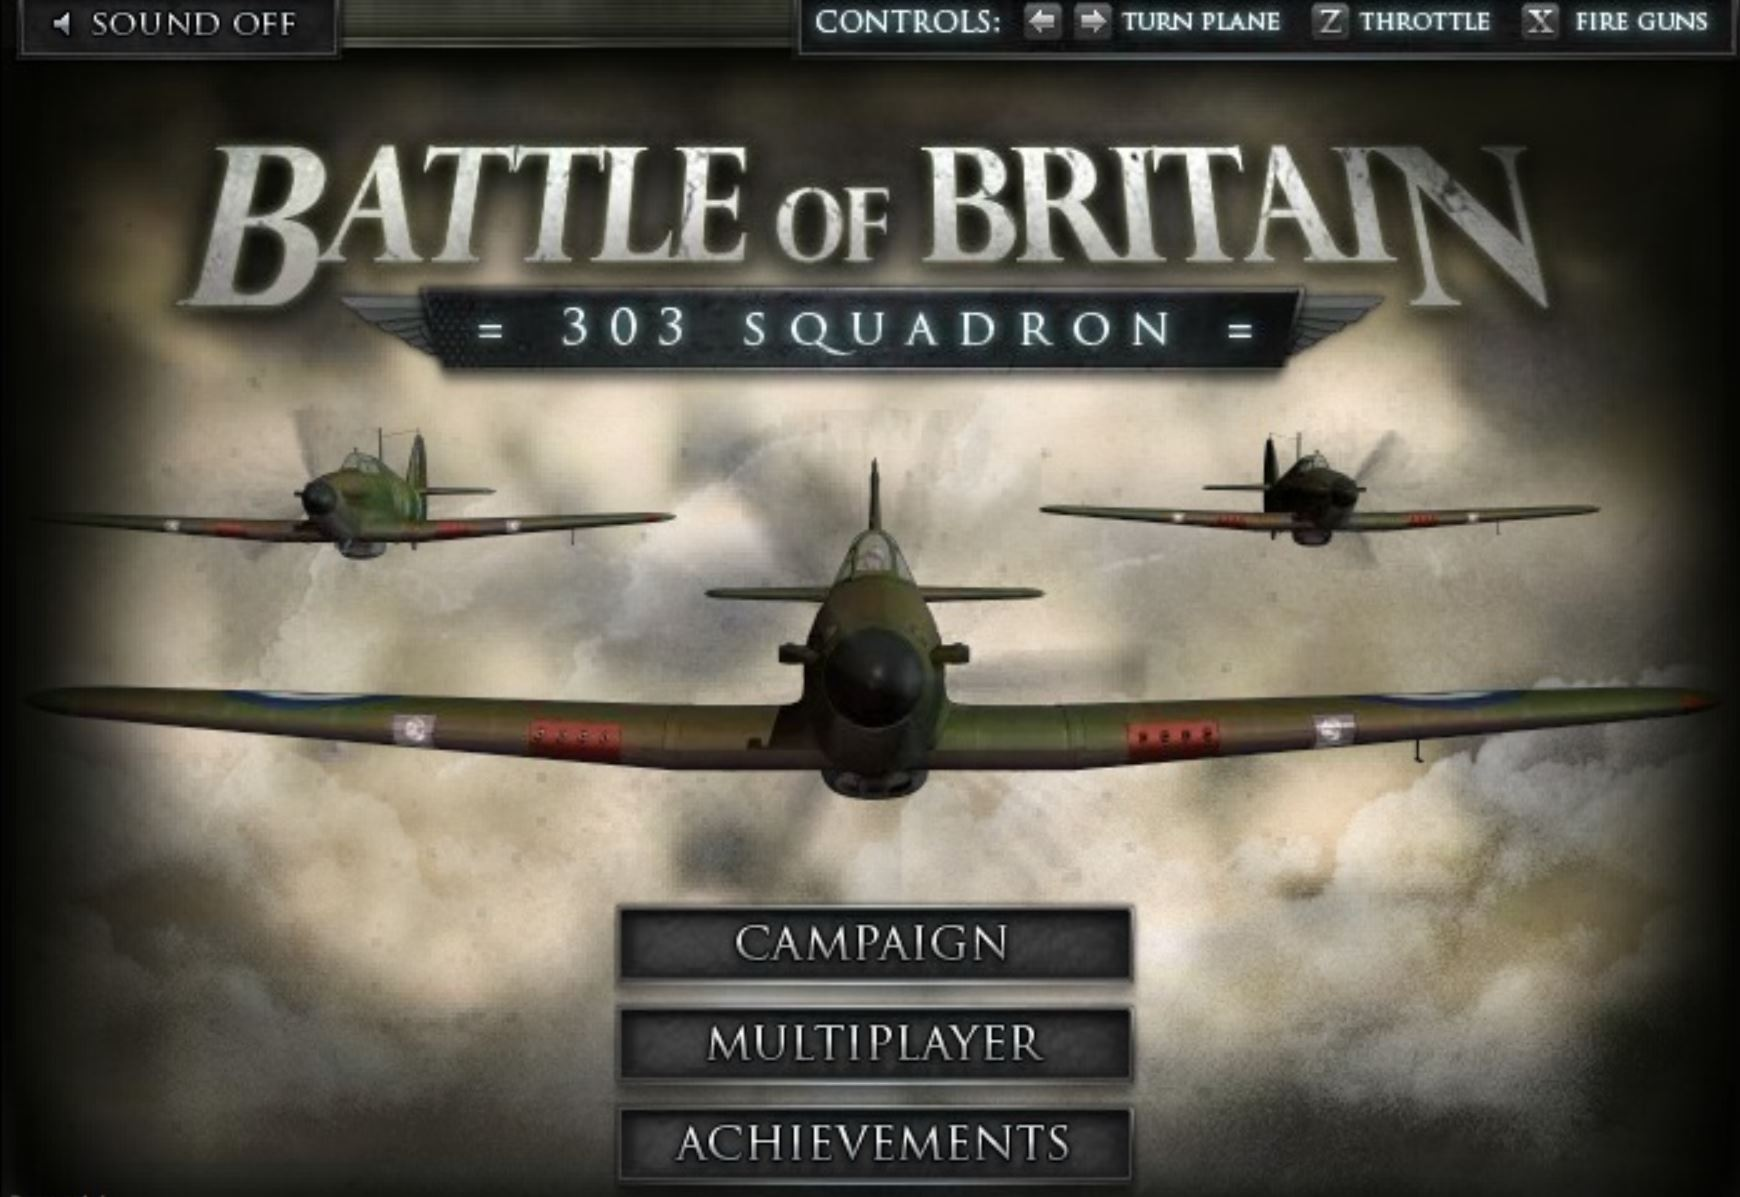 Battle of Britain - 303 Squadron hacked